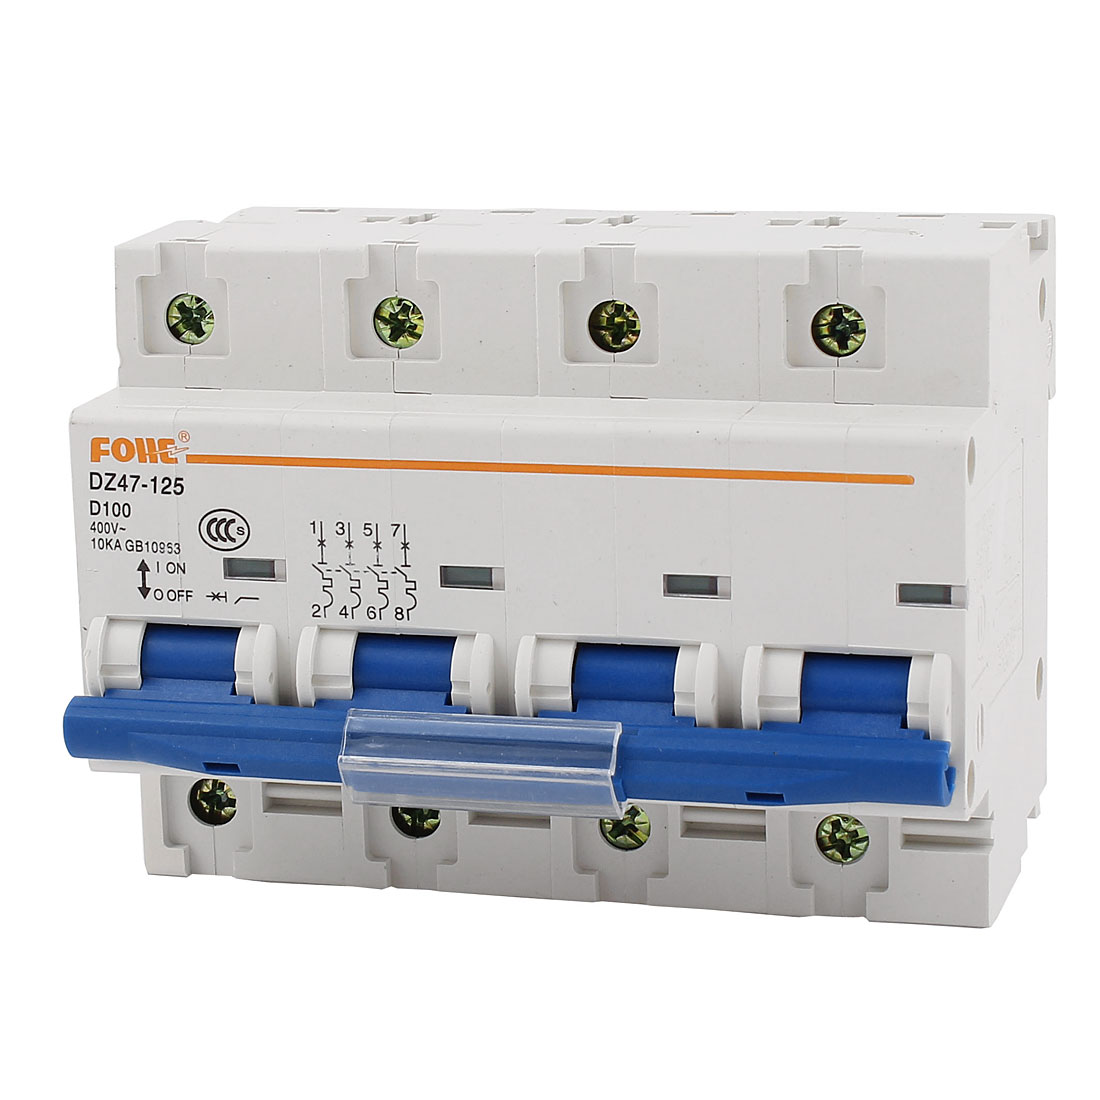 DZ47-125 AC 400V 100A 10KA 35mm DIN Rail Mount 4Pole Overload Protection Miniature Circuit Breaker